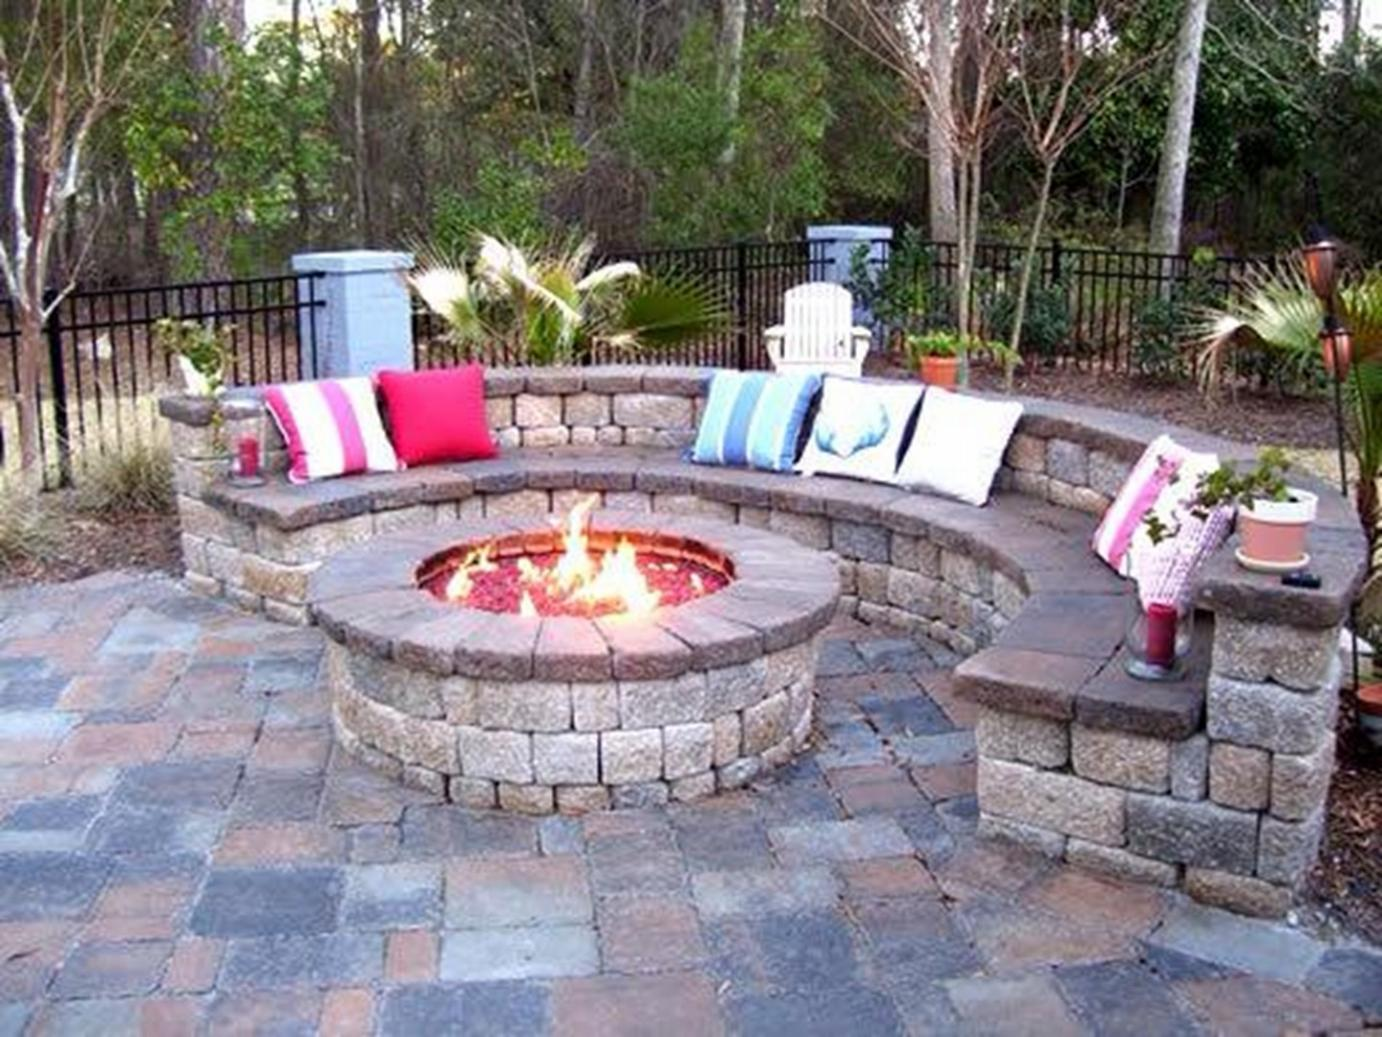 backyard fire pit ideas photo - 1